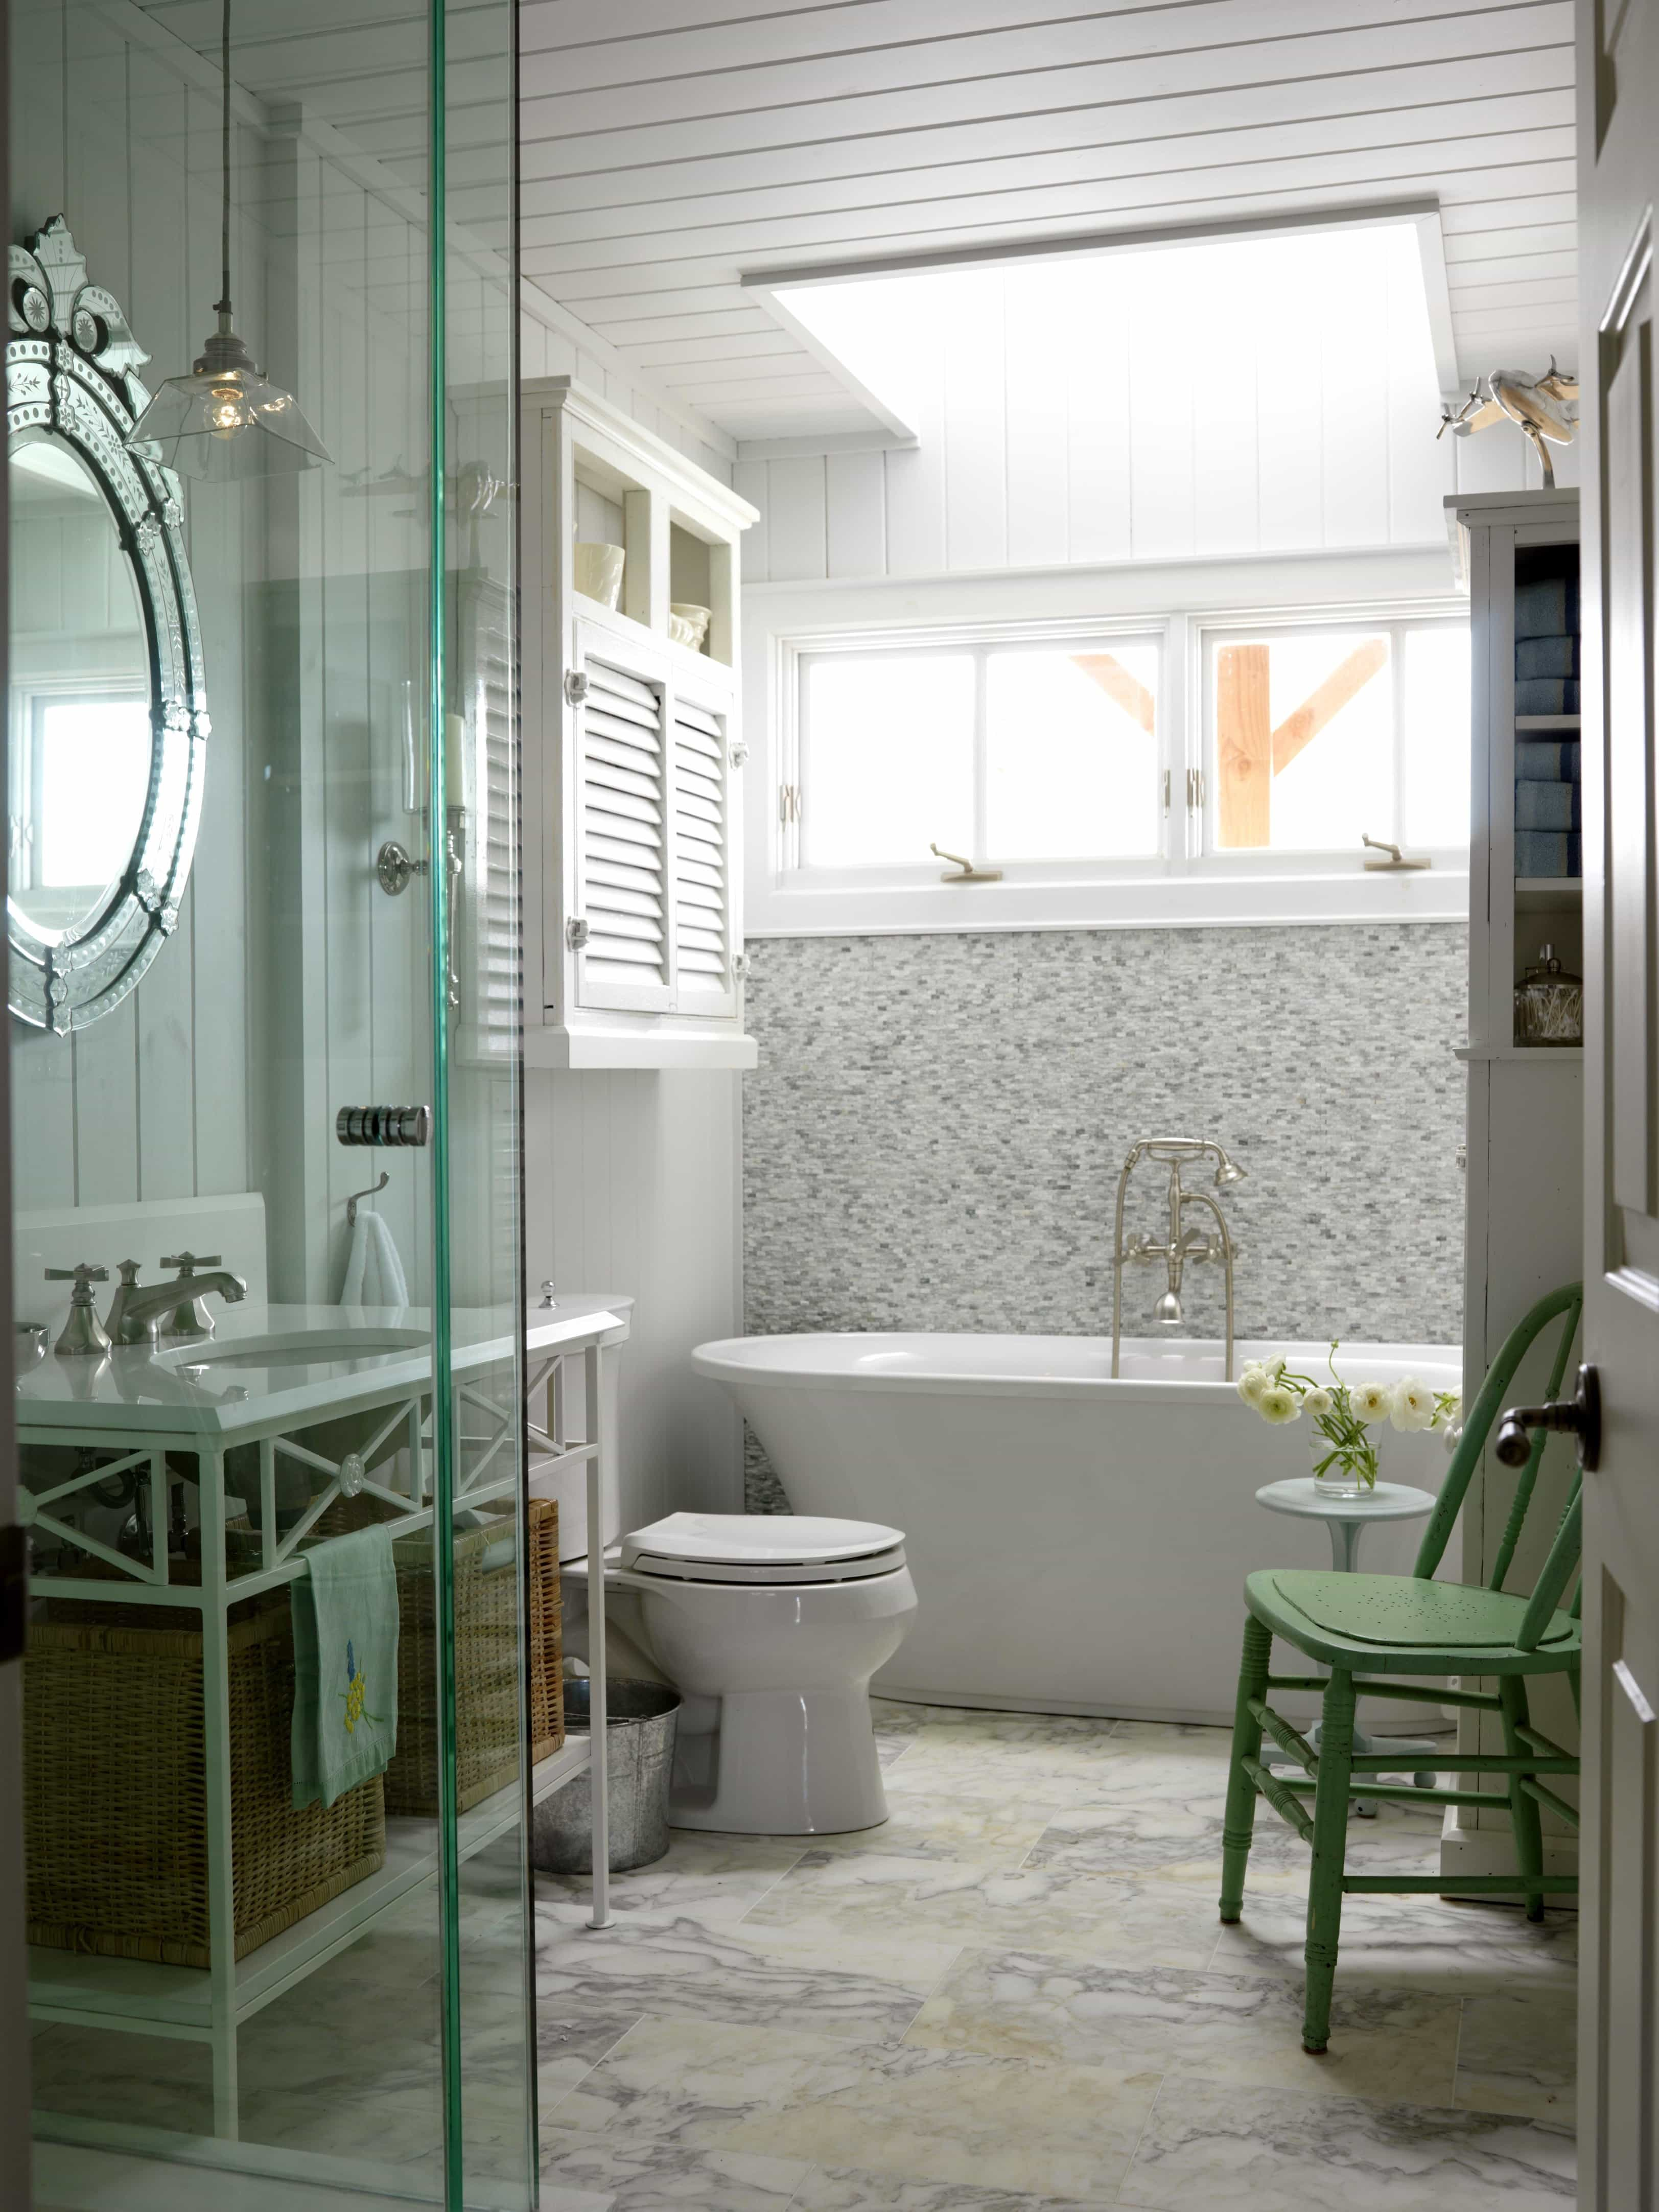 Featured Image of Cottage Master Bathroom With Luxurious Marble Flooring